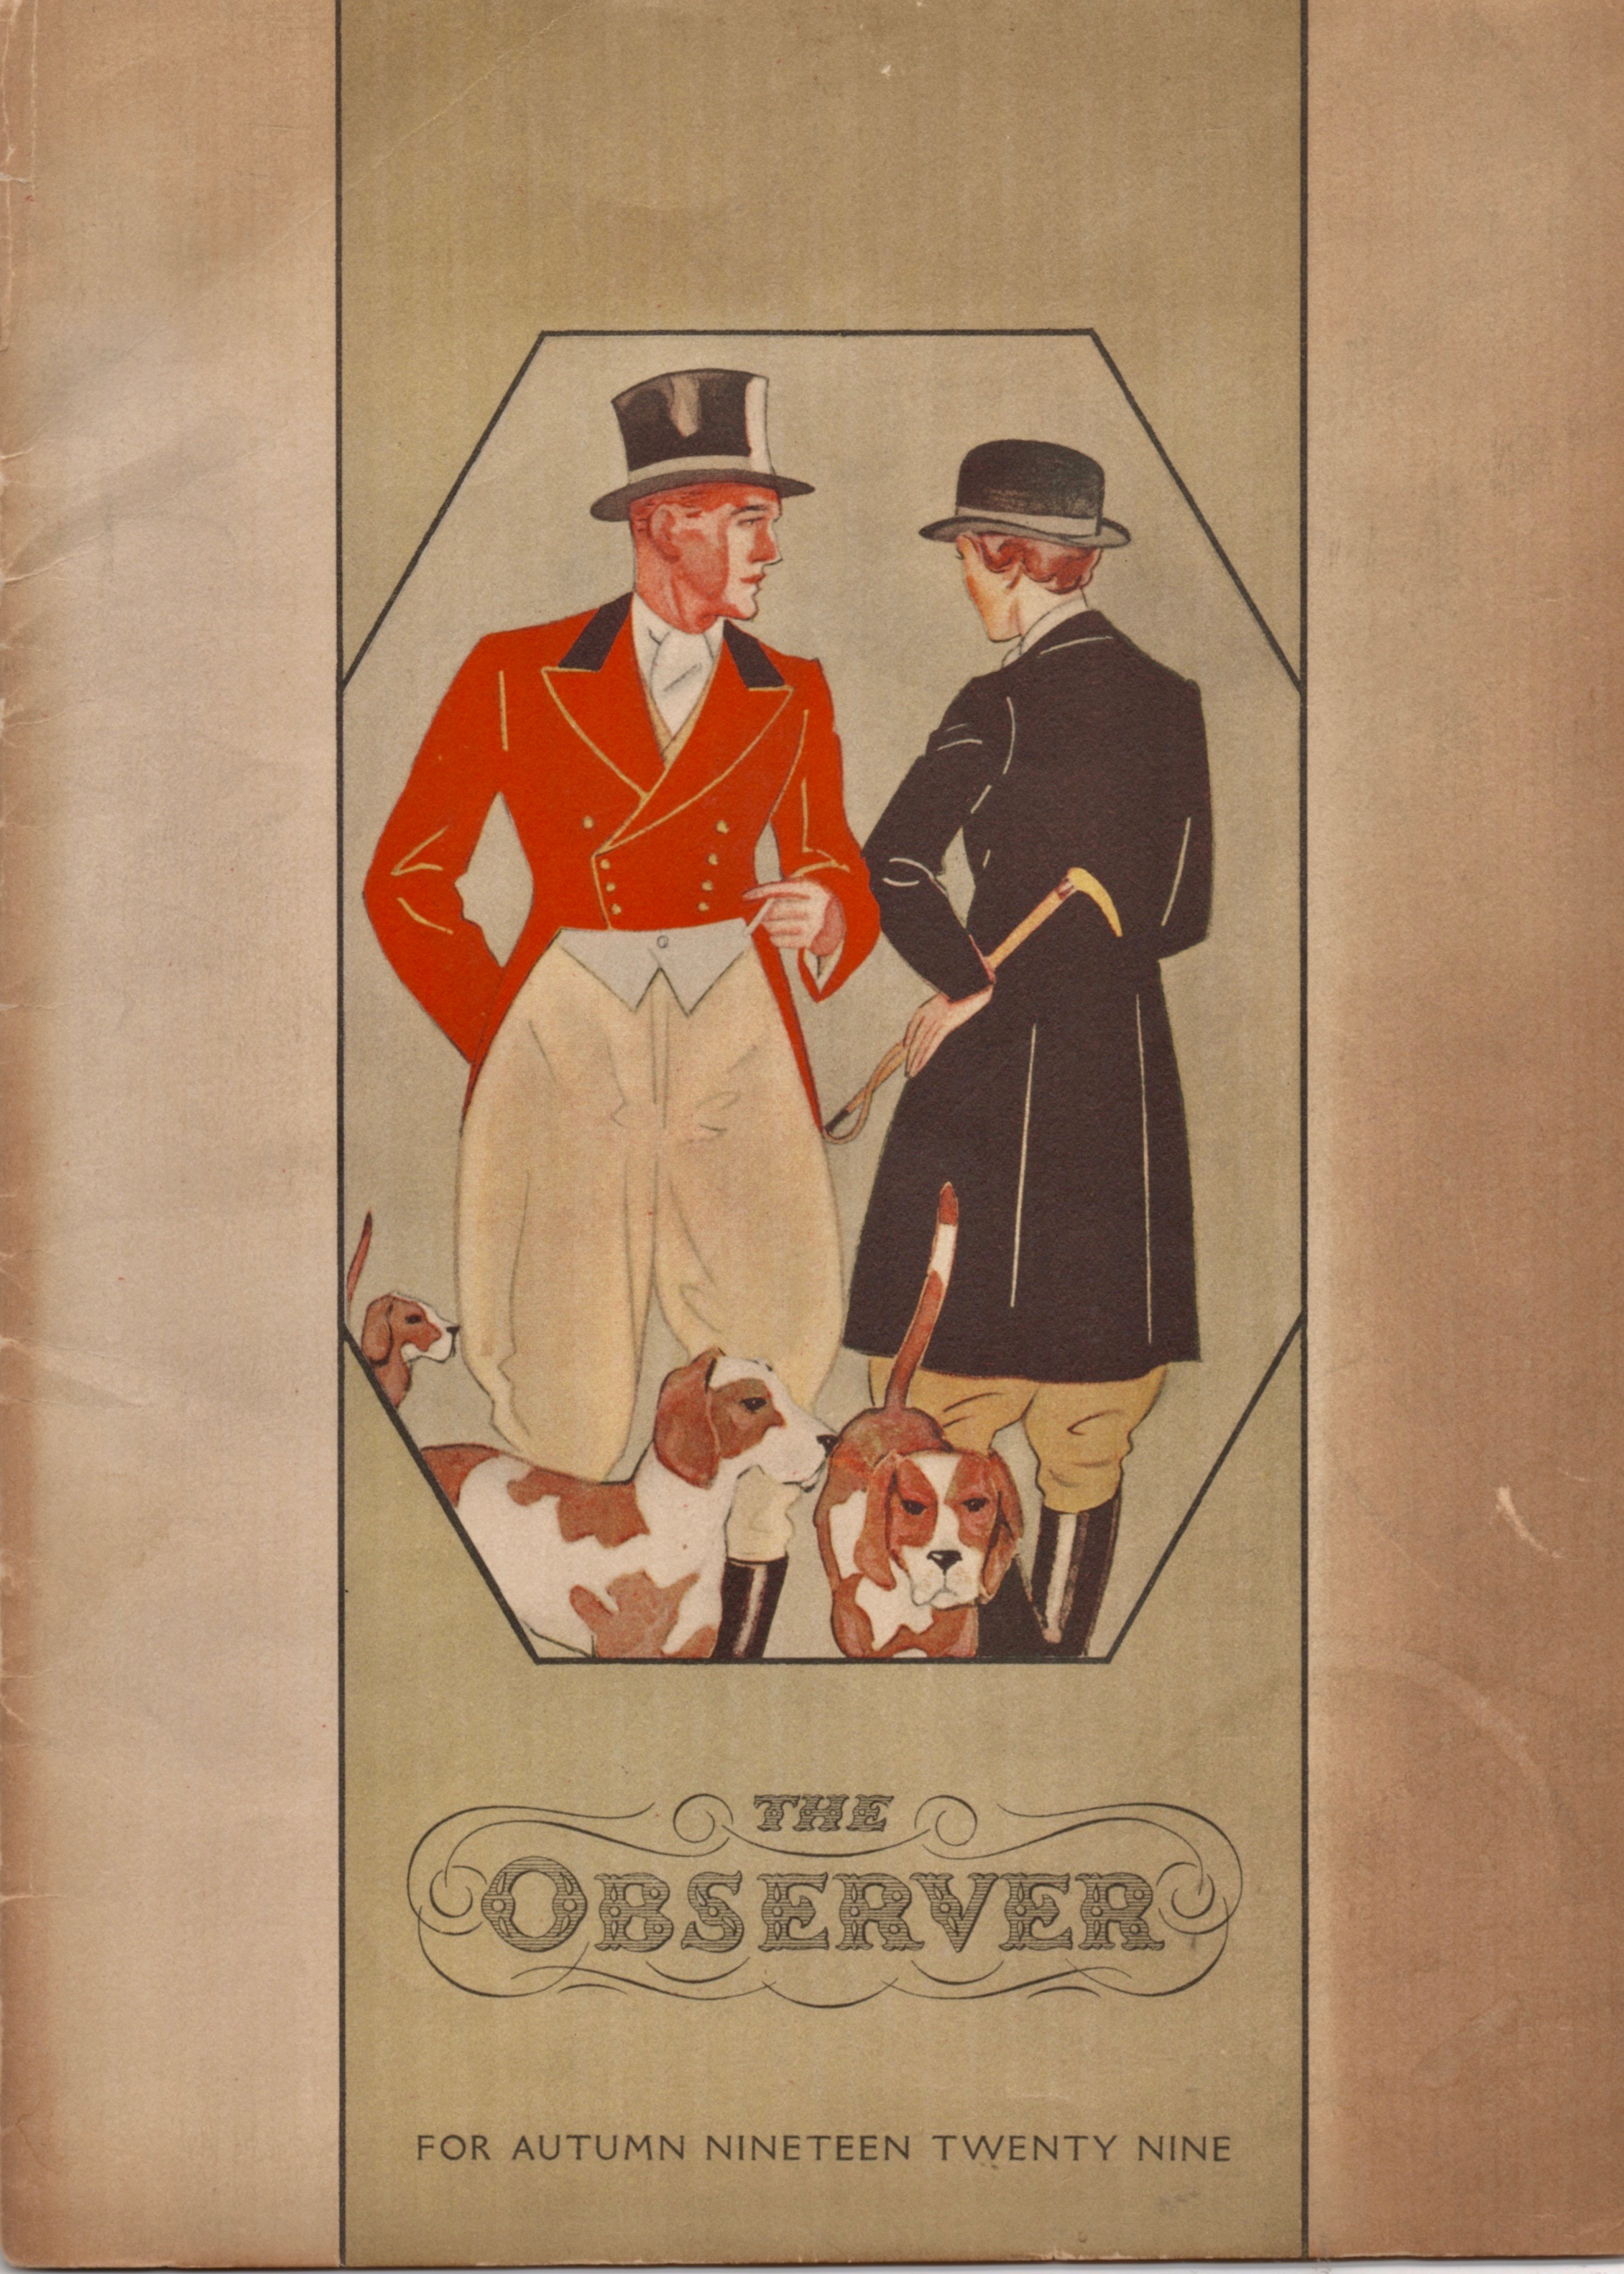 The cover to The Observer for Autumn, 1929. I found this on eBay more than 15 years ago, and have never seen a second one since. If you own a copy, let me know. So far, I've not found anyone who has one.